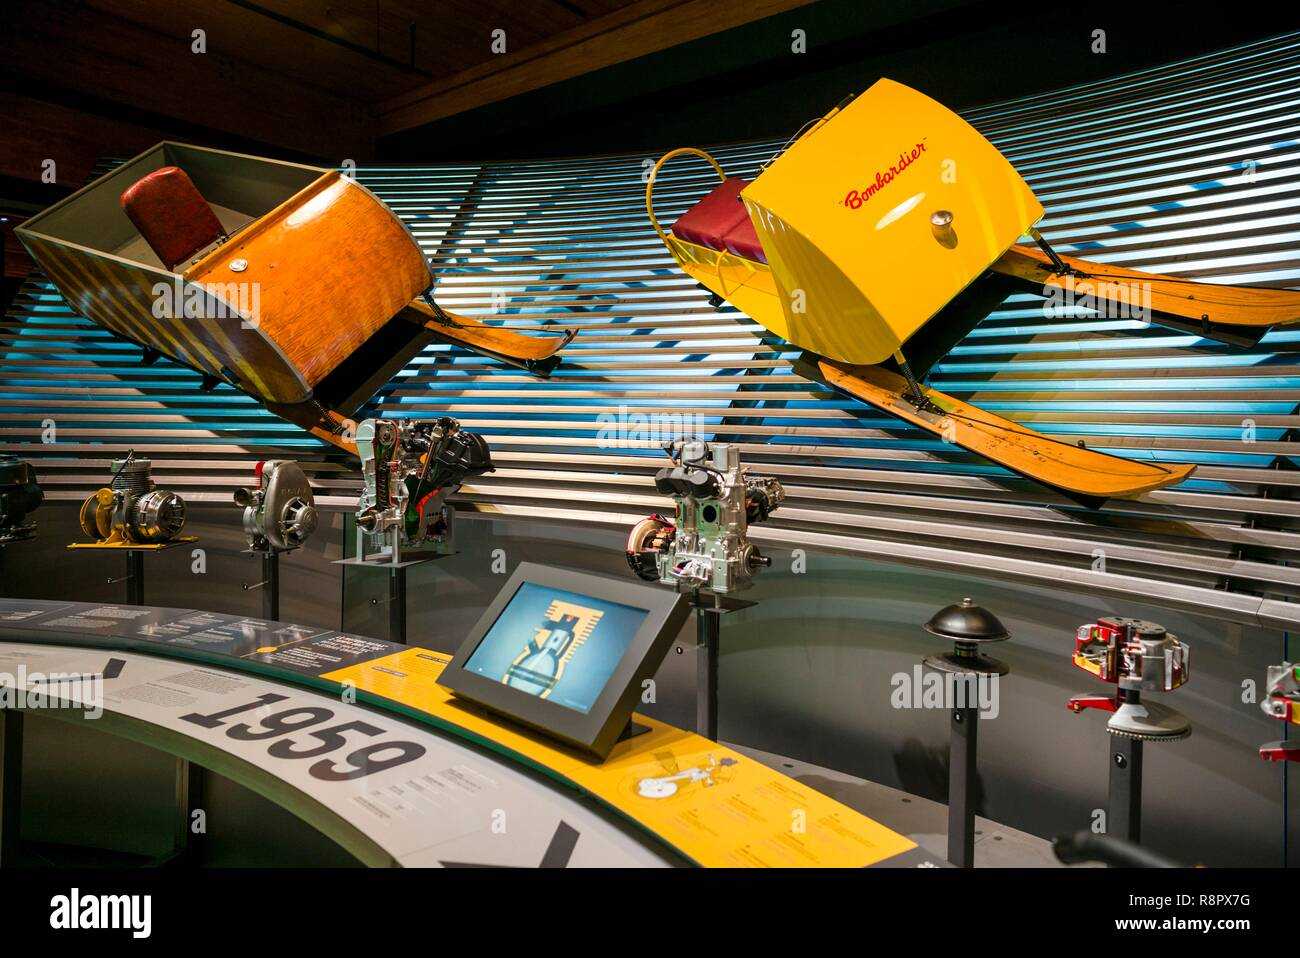 Canada, Quebec, Estrie Region, Valcourt, Musee J Armand Bombardier, museum dedicated to the inventor of the modern snowmobile, interior, early snowmobiles - Stock Image